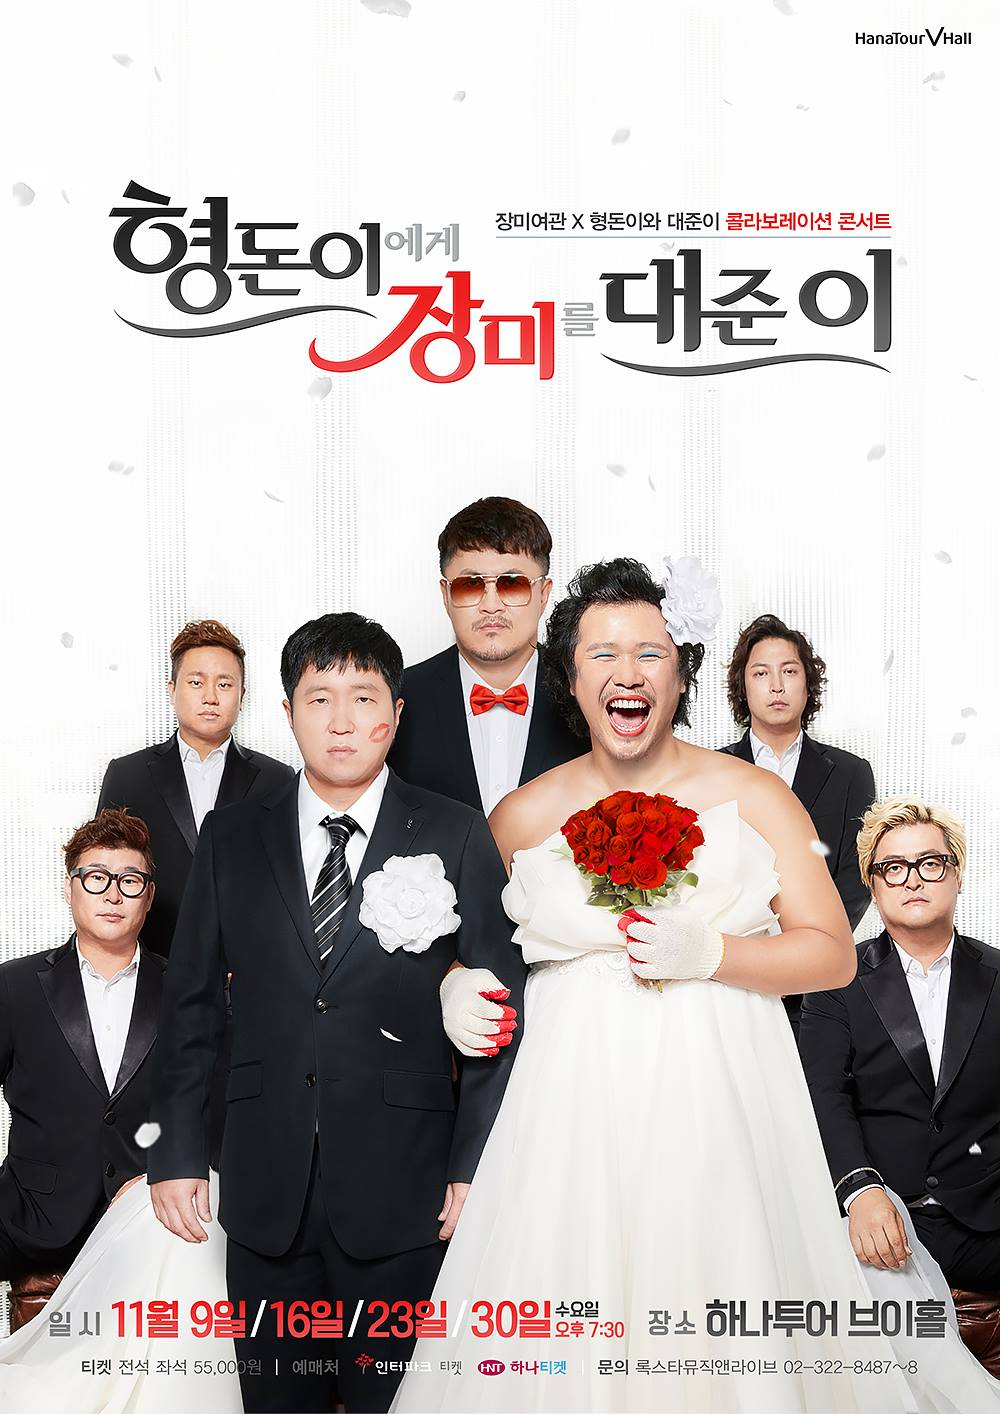 정형돈,데프콘,jung hyungdon, Defconn, Rose motel Joint album concert poster